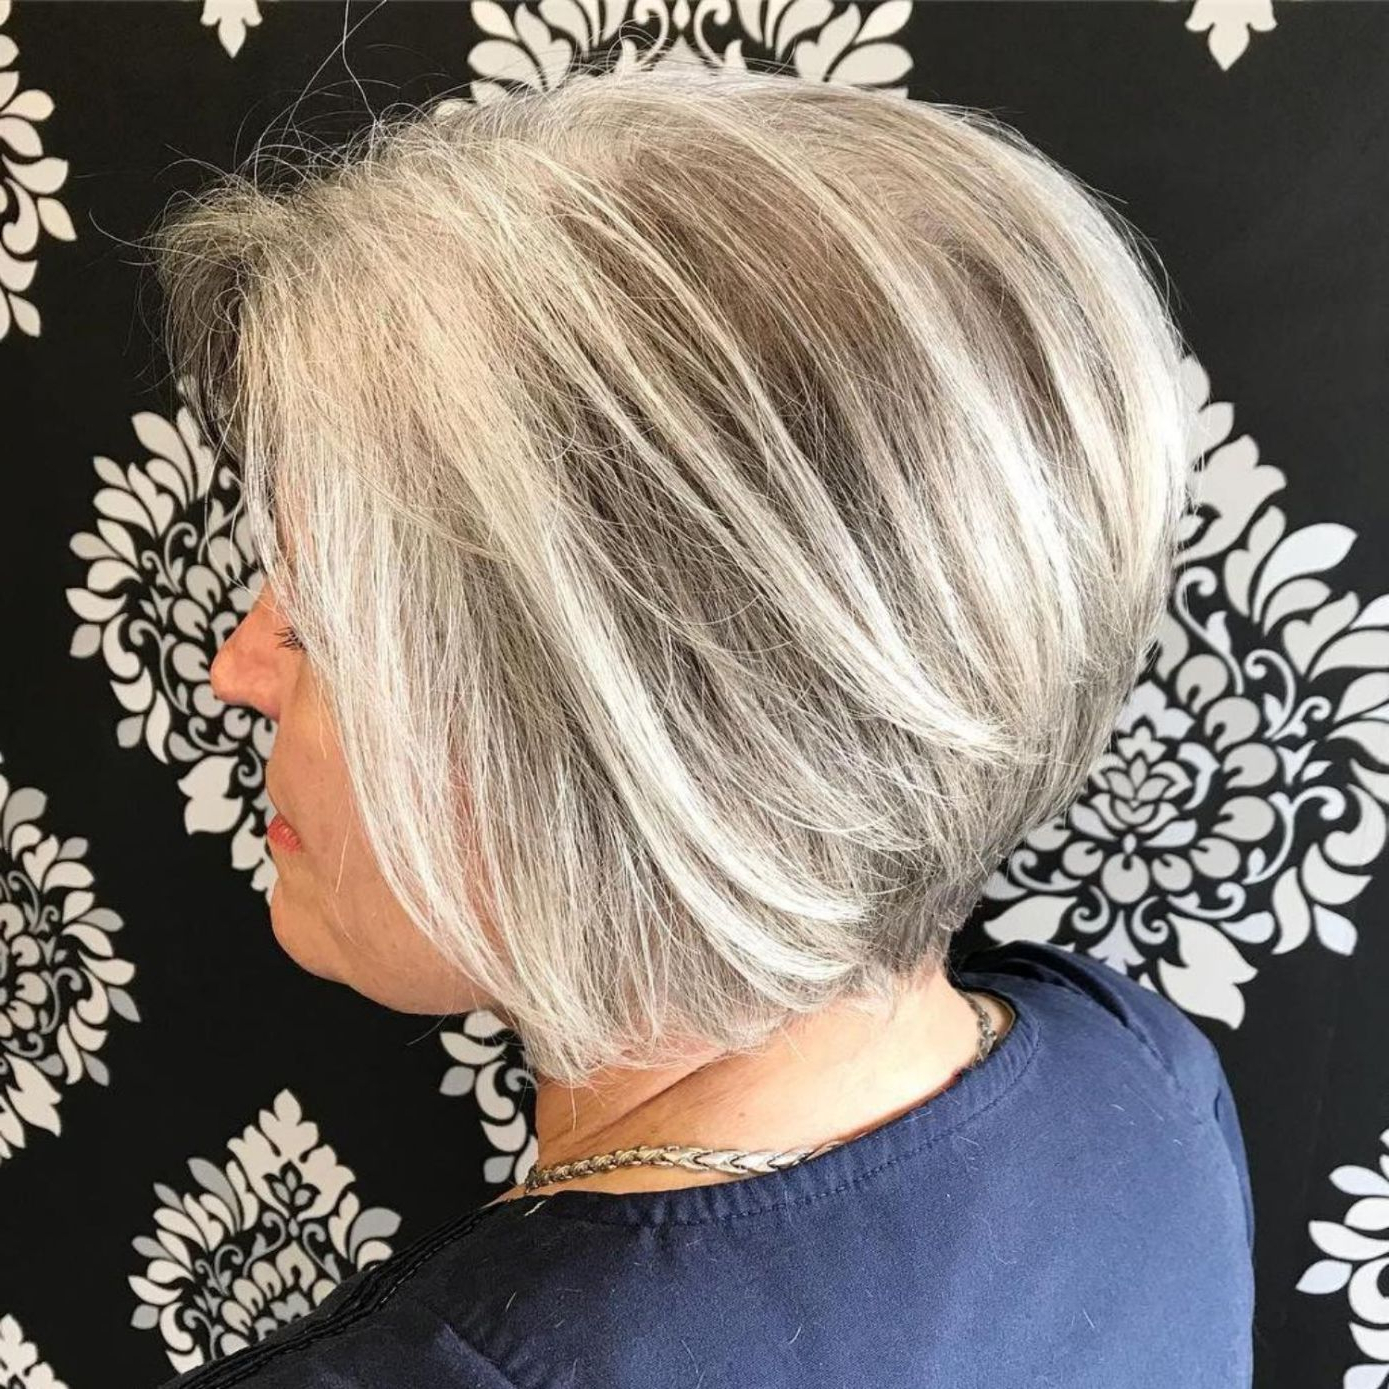 60 Best Hairstyles And Haircuts For Women Over 60 To Suit Any Taste Intended For Silver And Sophisticated Hairstyles (View 12 of 20)